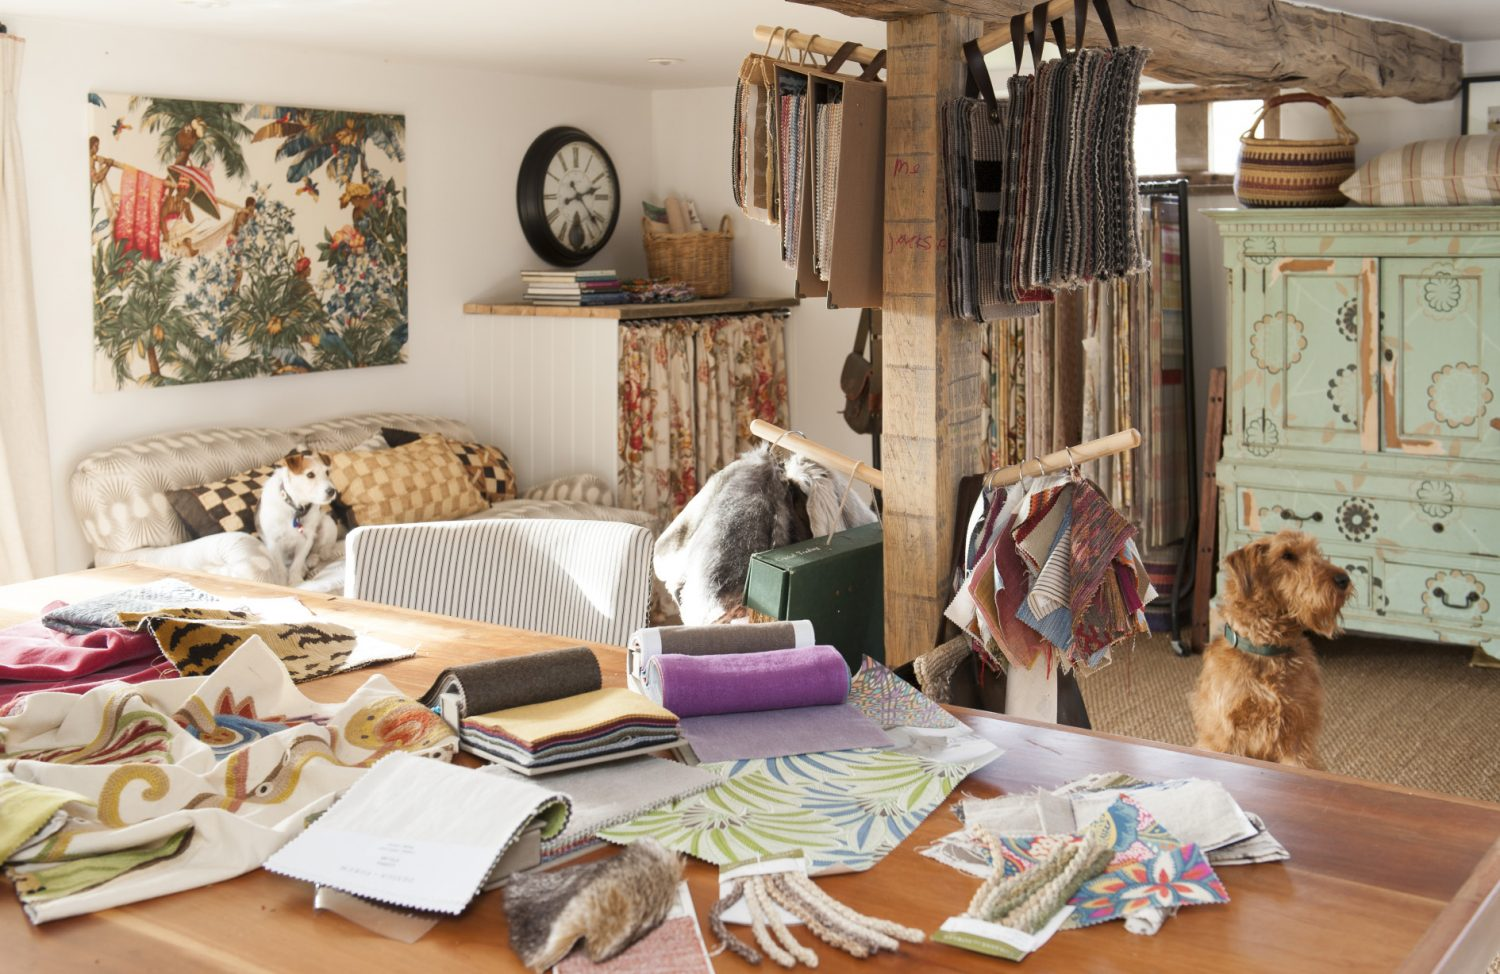 Downstairs, reached via French doors which face out on to the garden, is Ally's office and work room. The room is filled with luscious fabric samples, wallpaper books and haberdasher's goodies